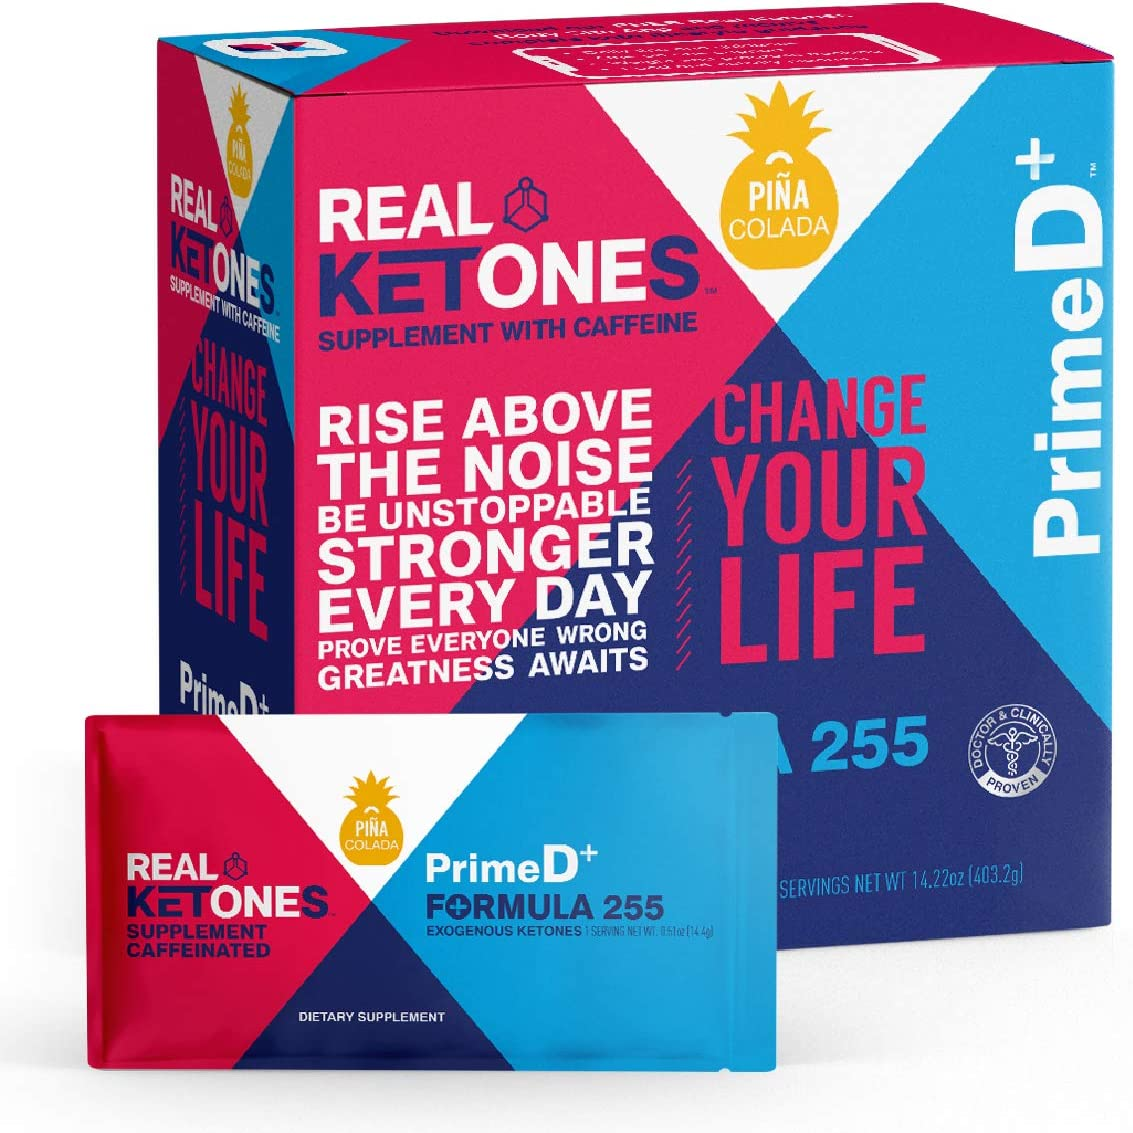 Real Ketones Prime D Pina Colada Caffeinated Exogenous Ketone Supplement with BHB and MCT Combo for Ketone Boost, Energy and Focus